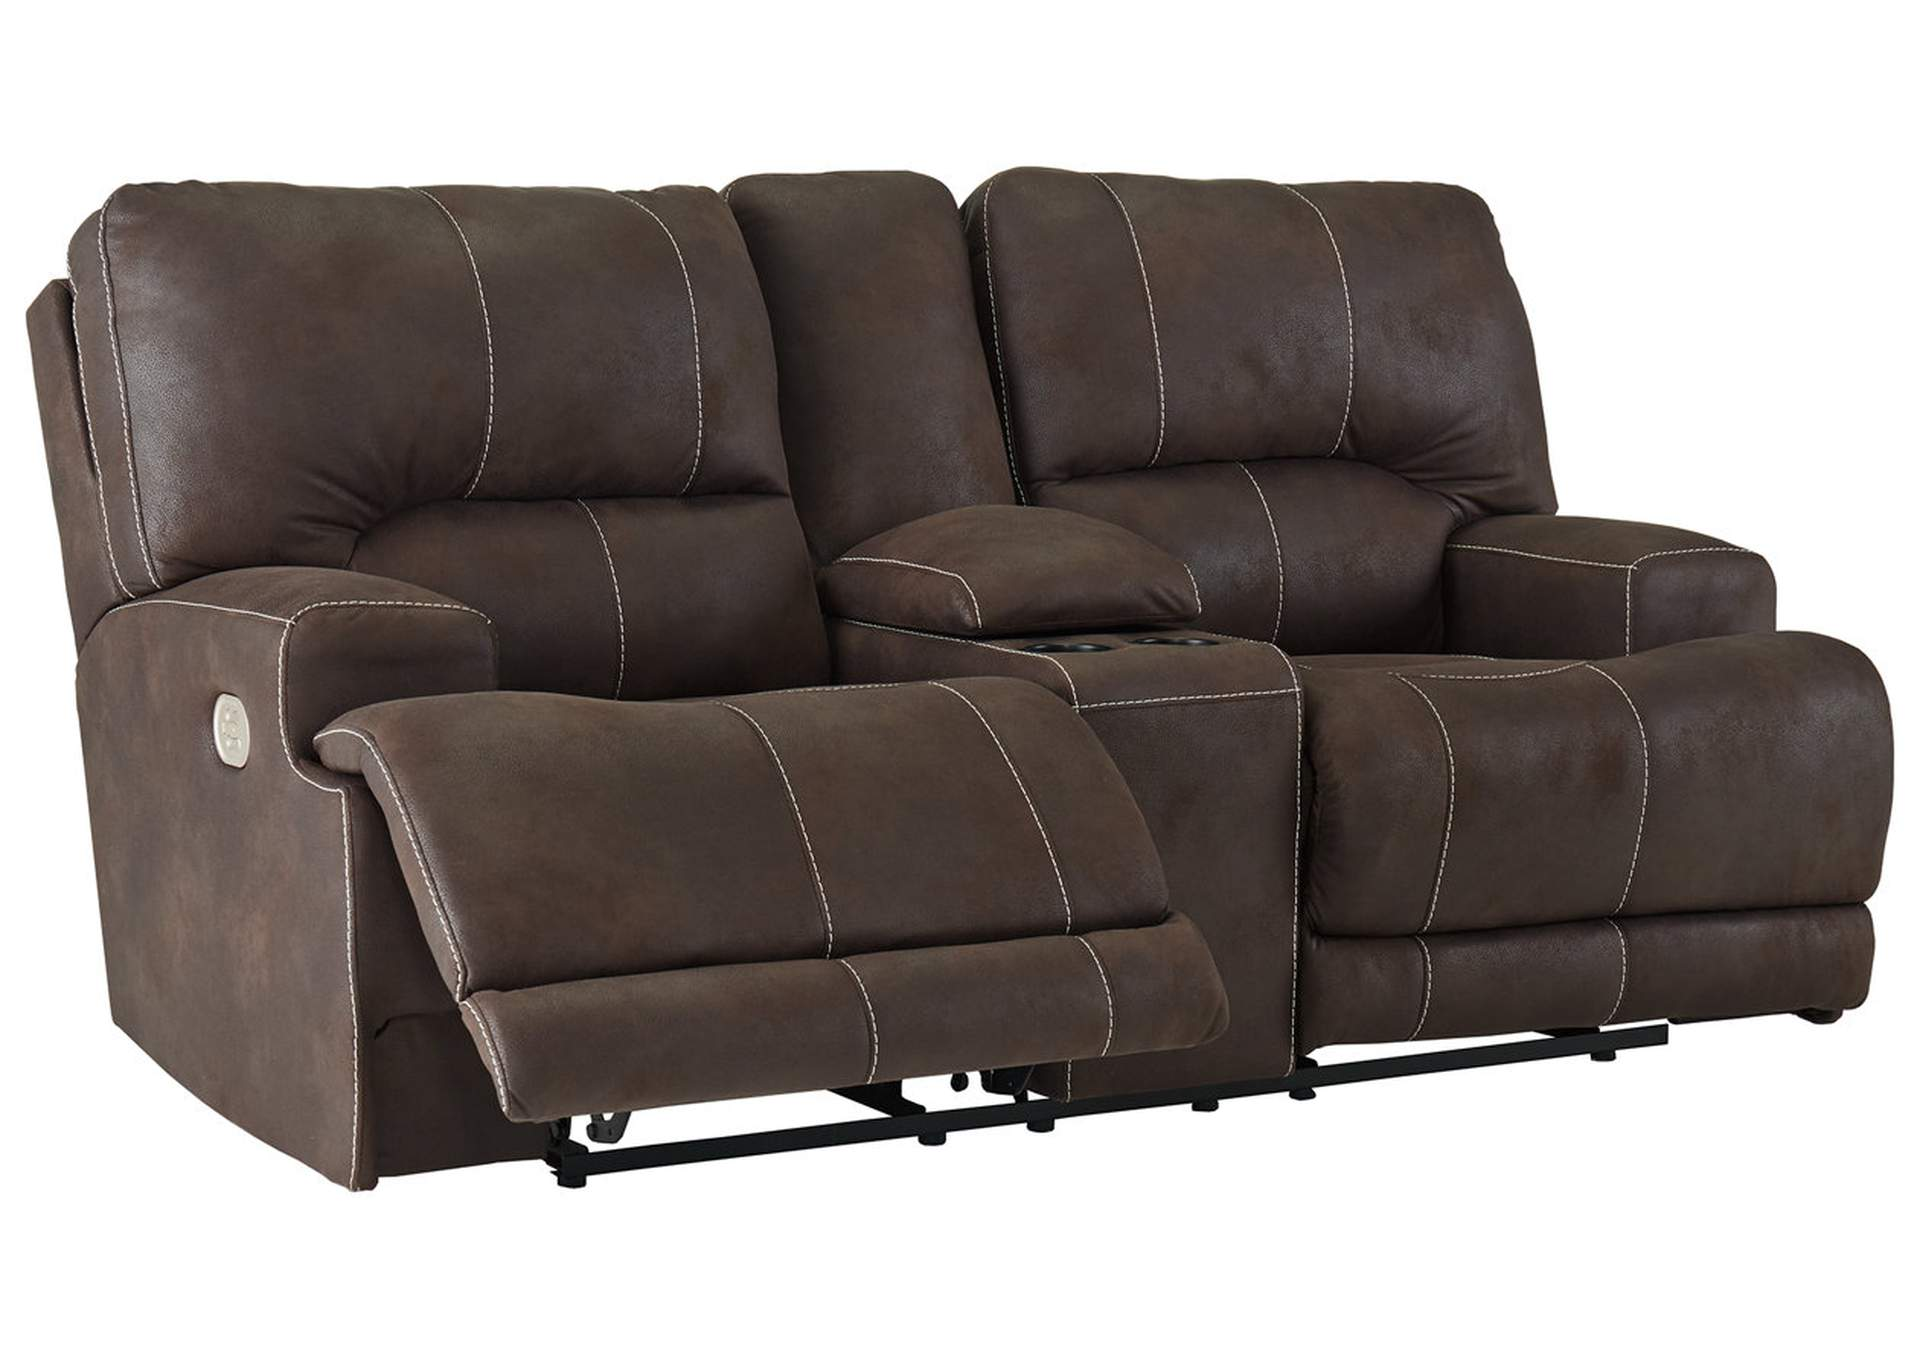 Kitching Java Power Reclining Loveseat,Signature Design By Ashley